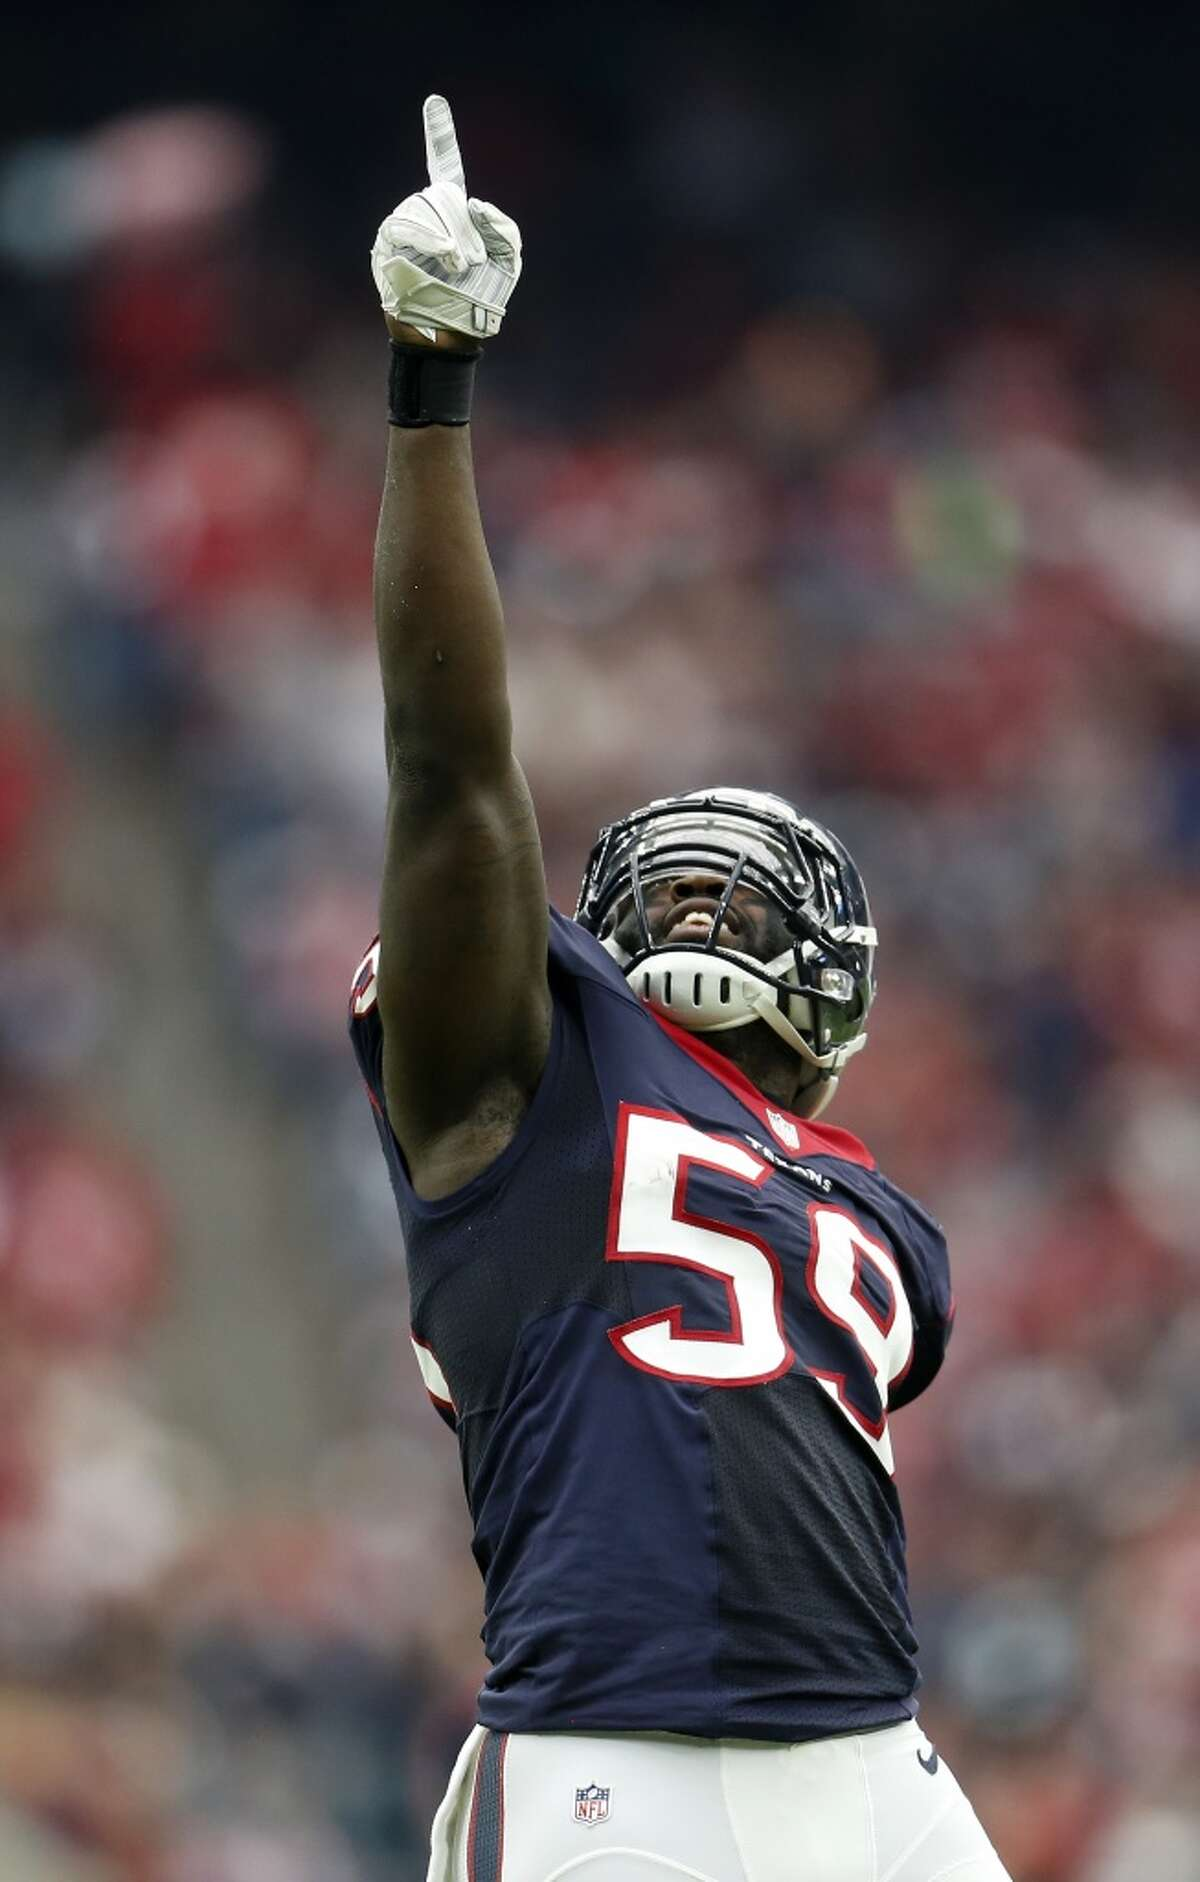 Houston Texans outside linebacker Whitney Mercilus (59) after his sack brought up a fourth down during the first quarter of an NFL football game at NRG Stadium on Sunday, Jan. 3, 2016, in Houston. ( Karen Warren / Houston Chronicle )